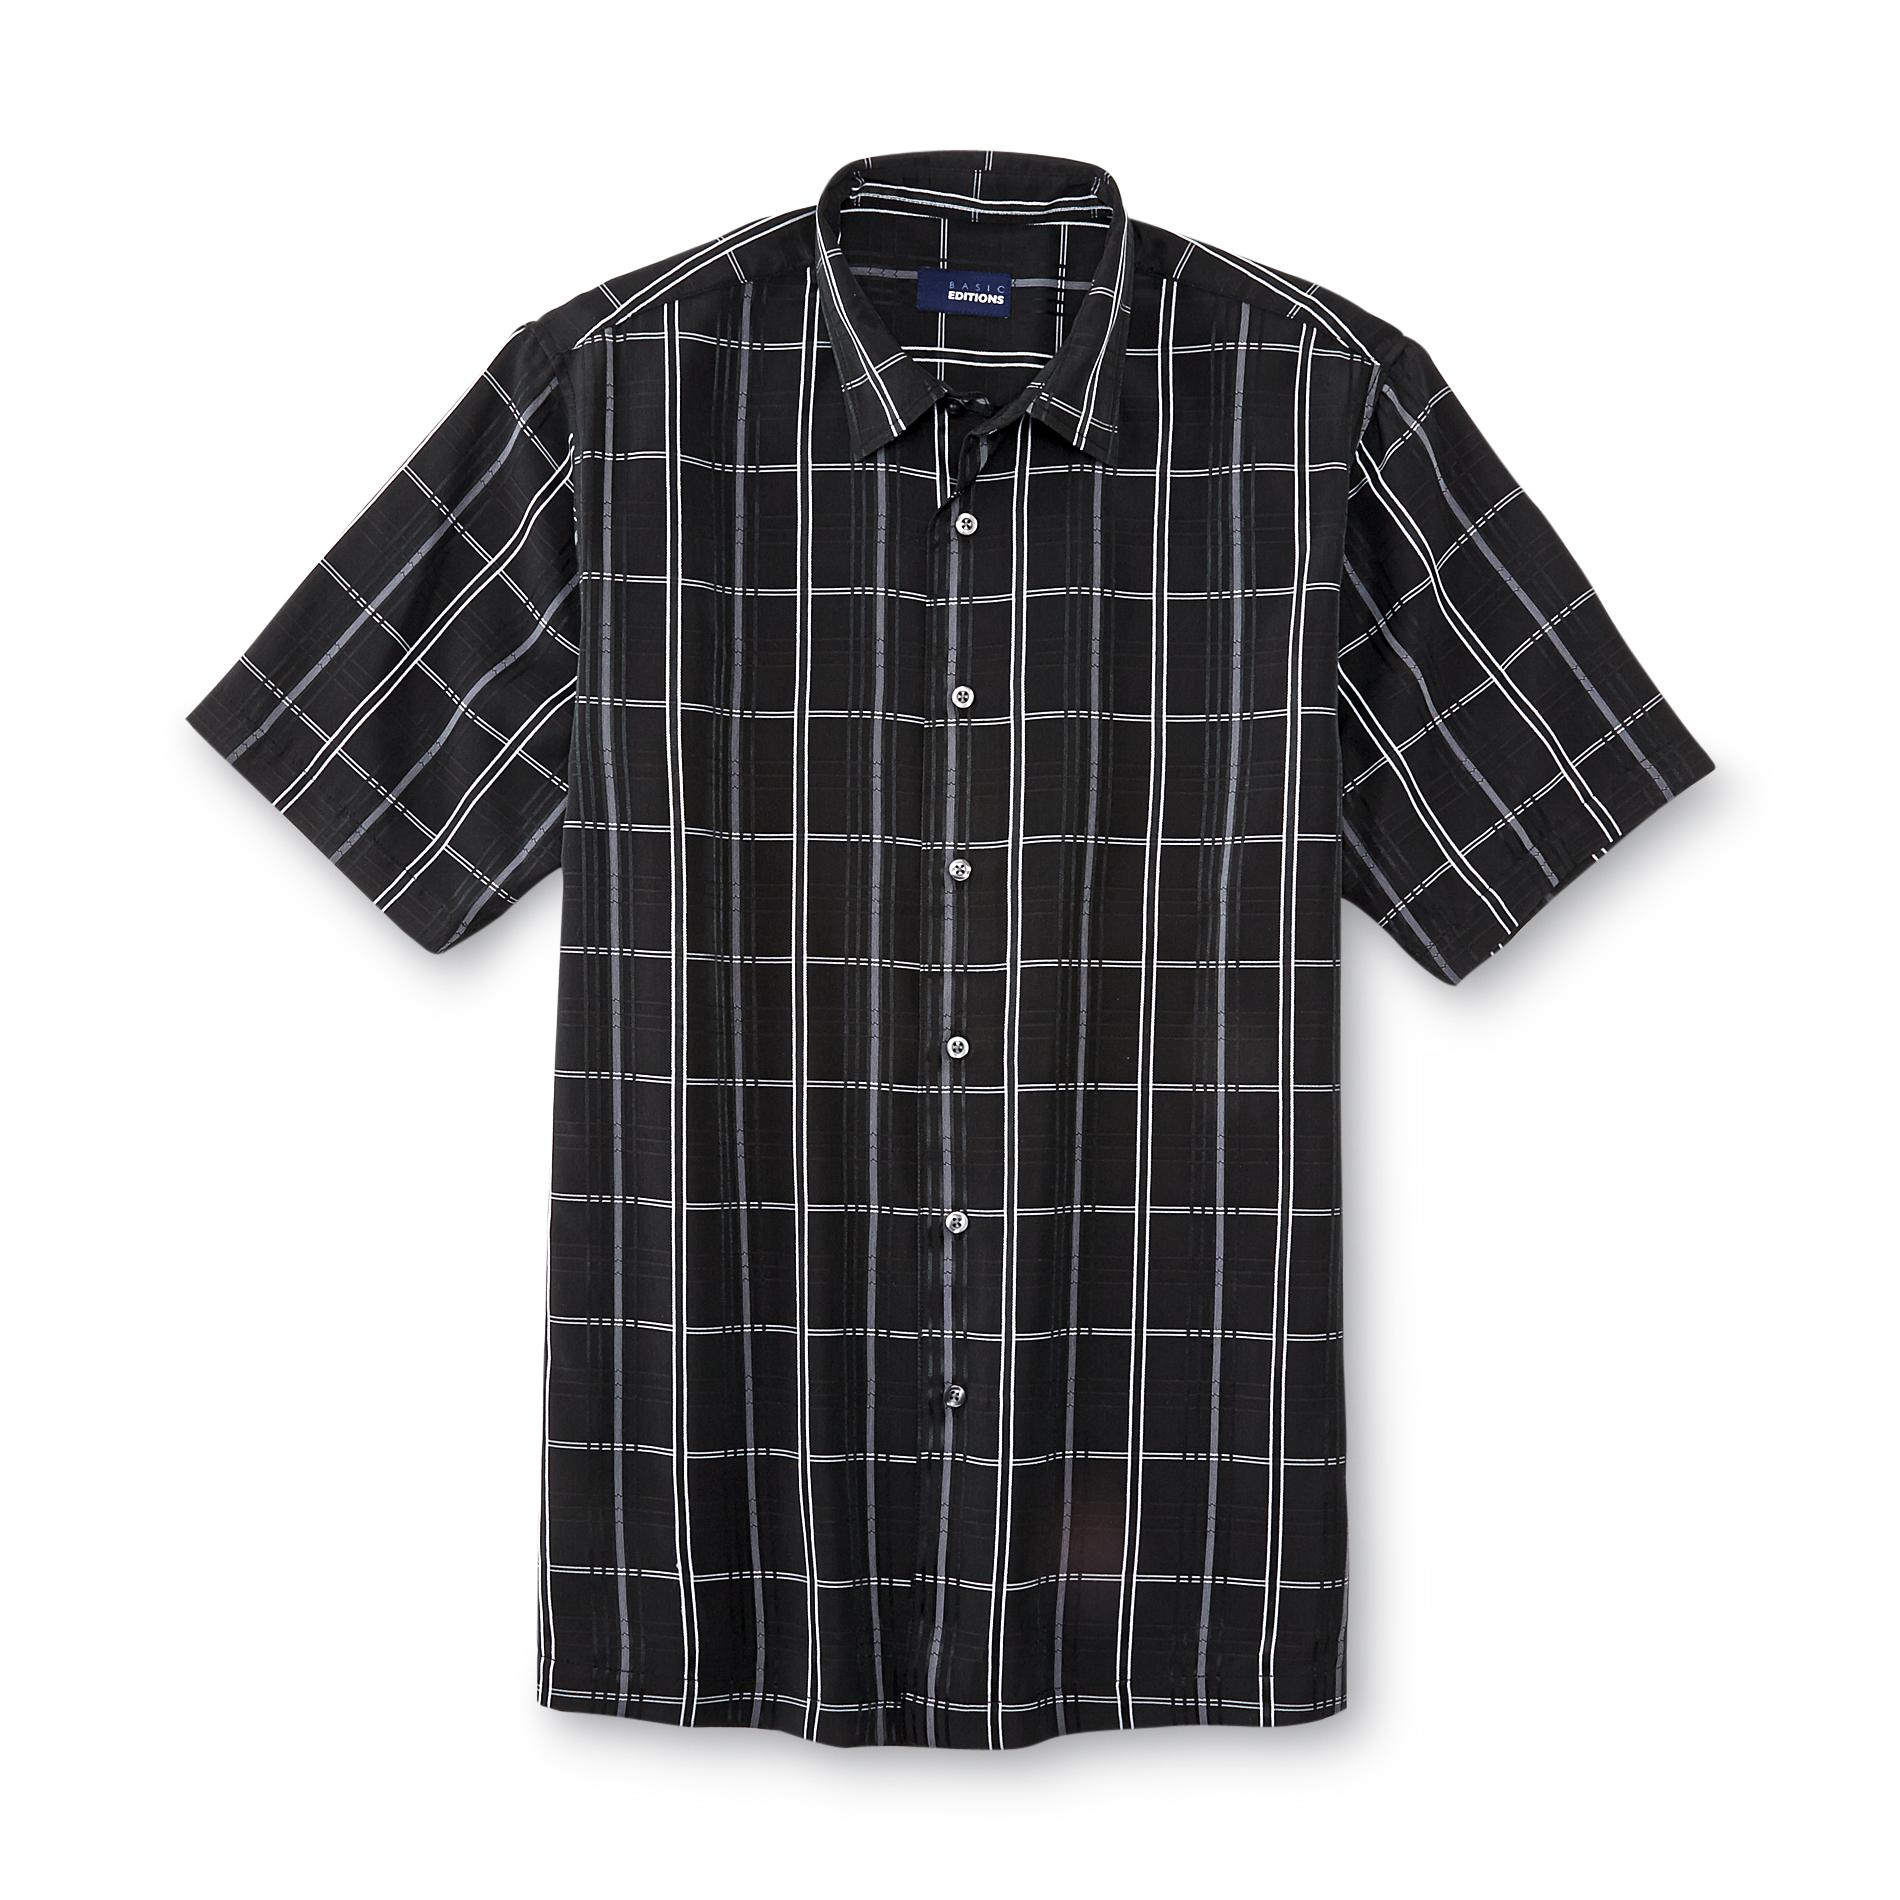 Basic Editions  Men's Button-Front Dress Shirt - Grid